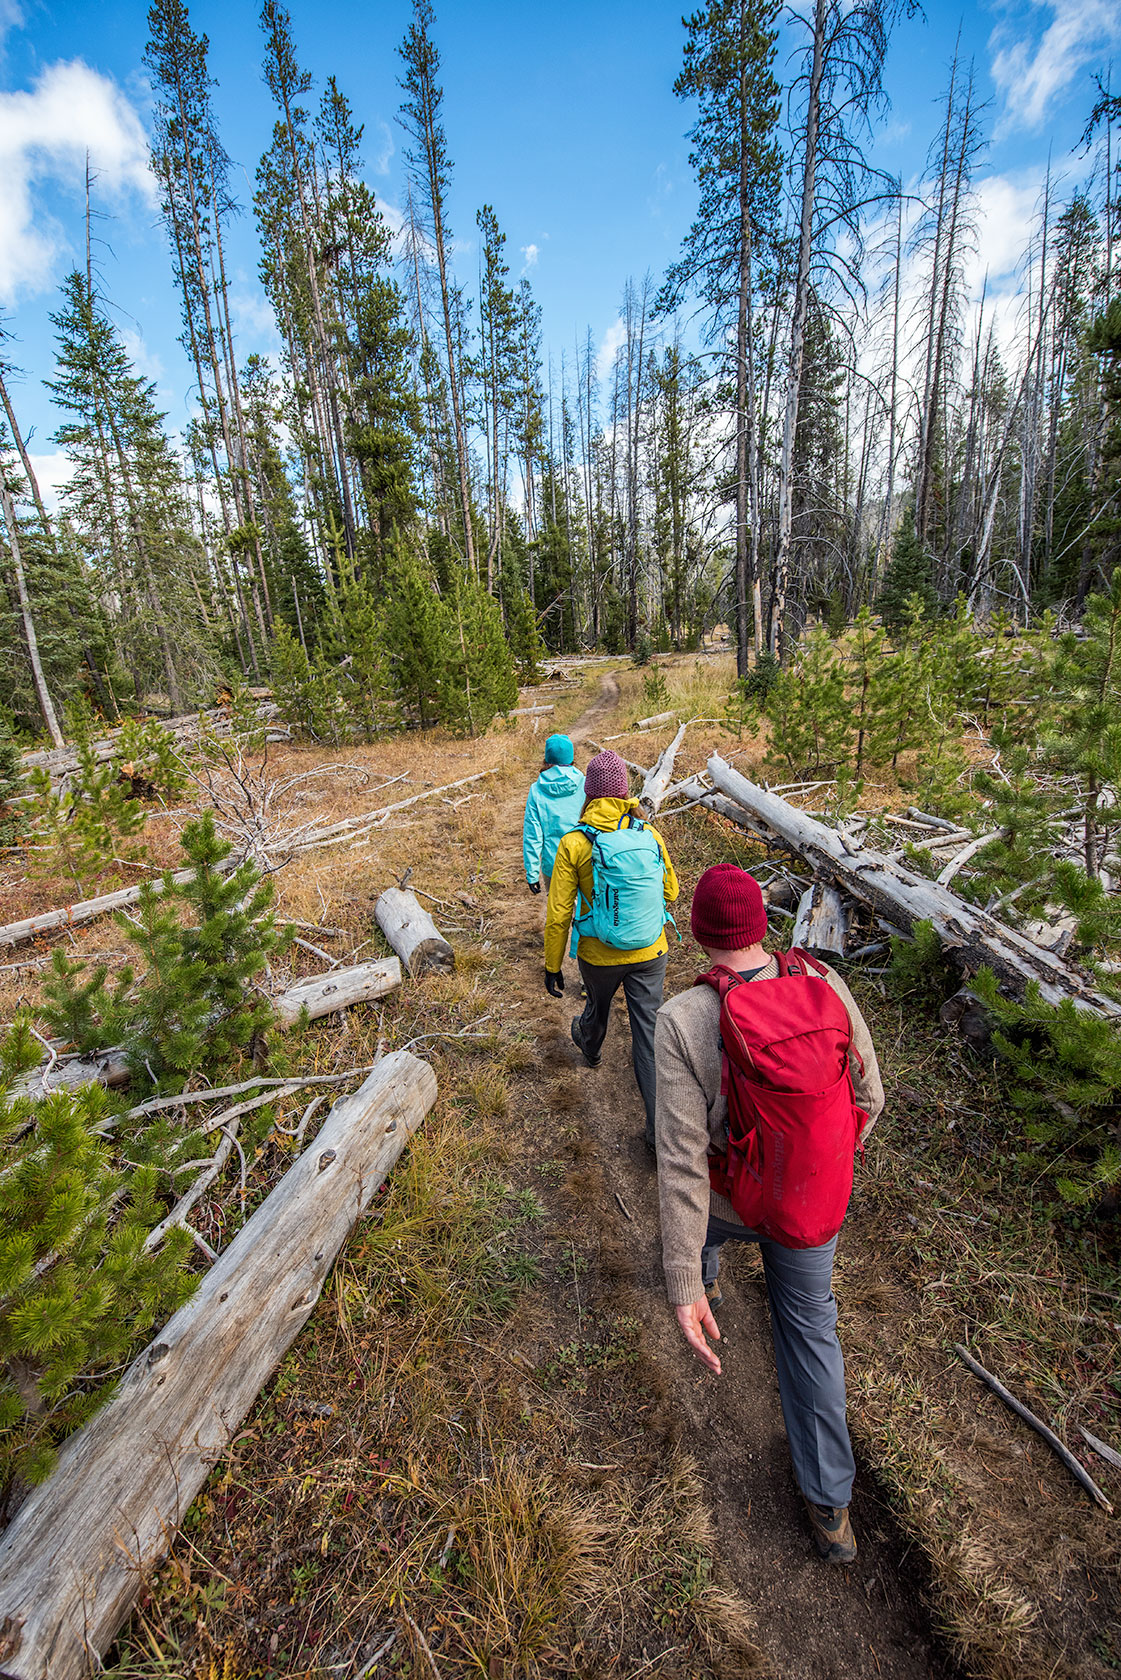 austin-trigg-patagonia-sawtooth-hiking-advenure-wilderness-forest-idaho-outside-lifestyle-day-fall-weather-mountains-trees-trail-clouds.jpg